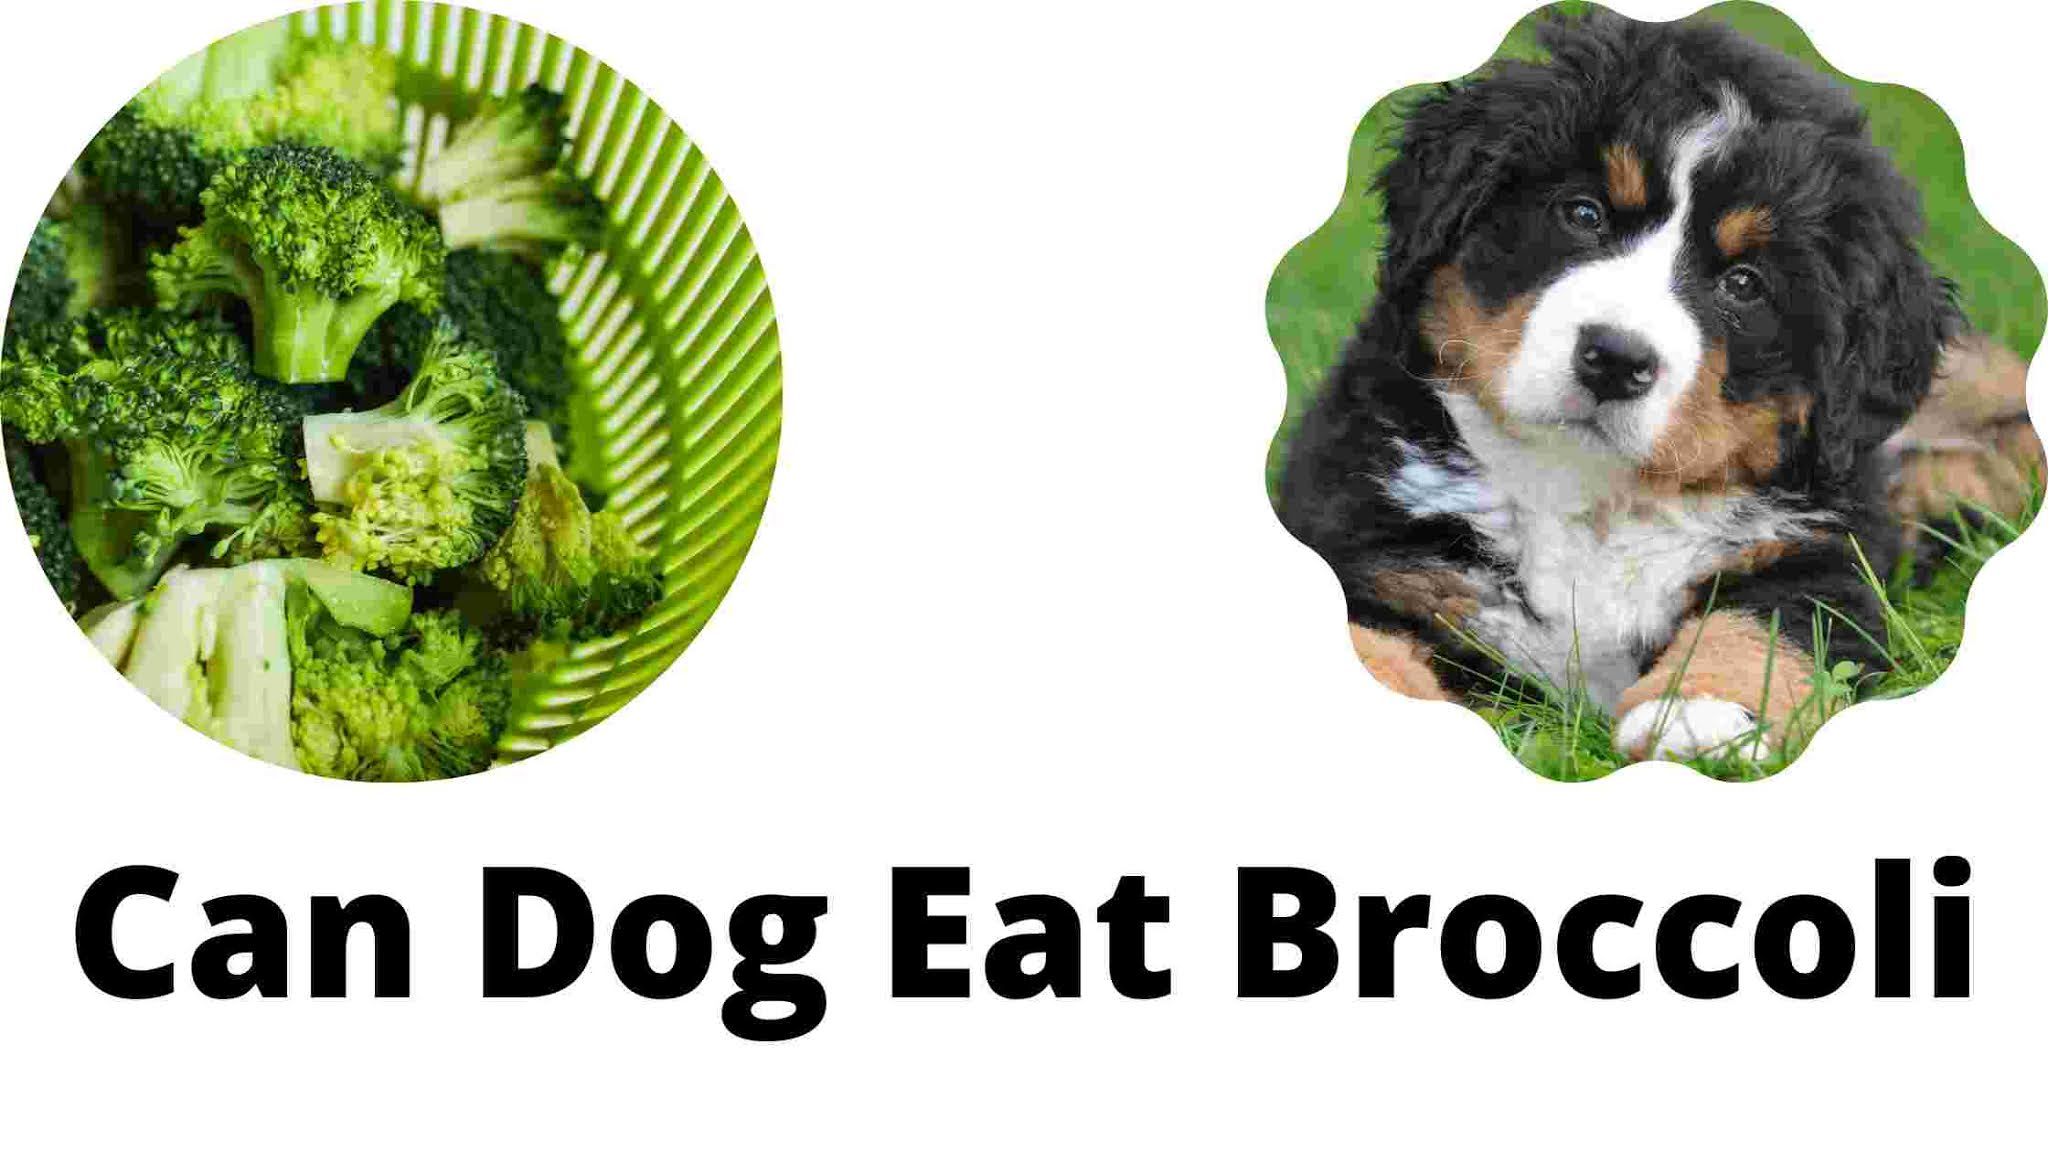 Can Dog Eat Broccoli